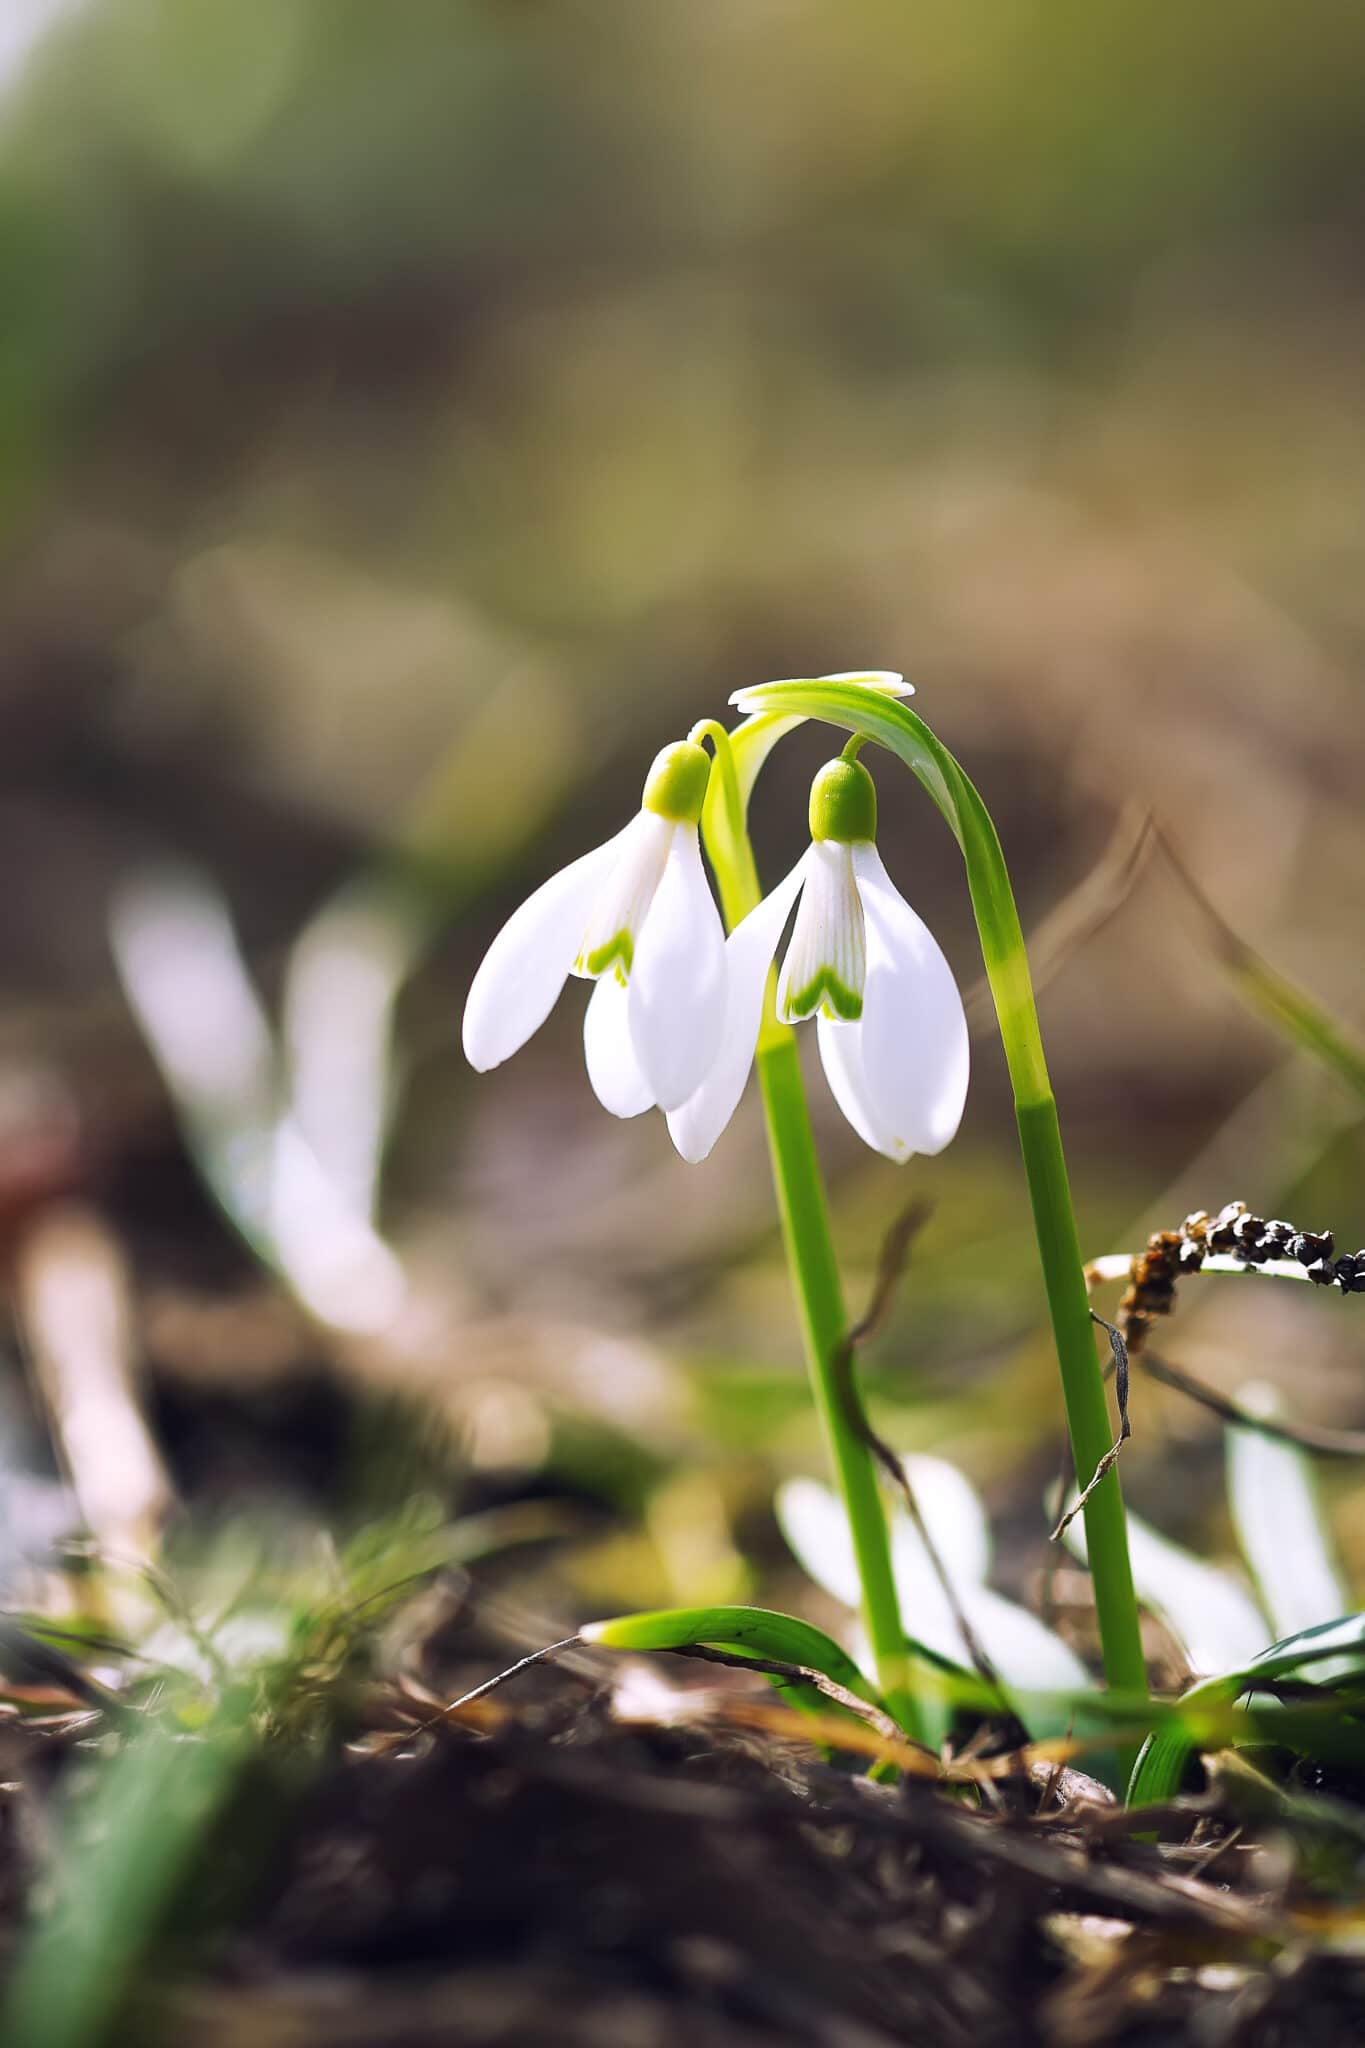 Spring snowdrop flowers blooming in the sun.